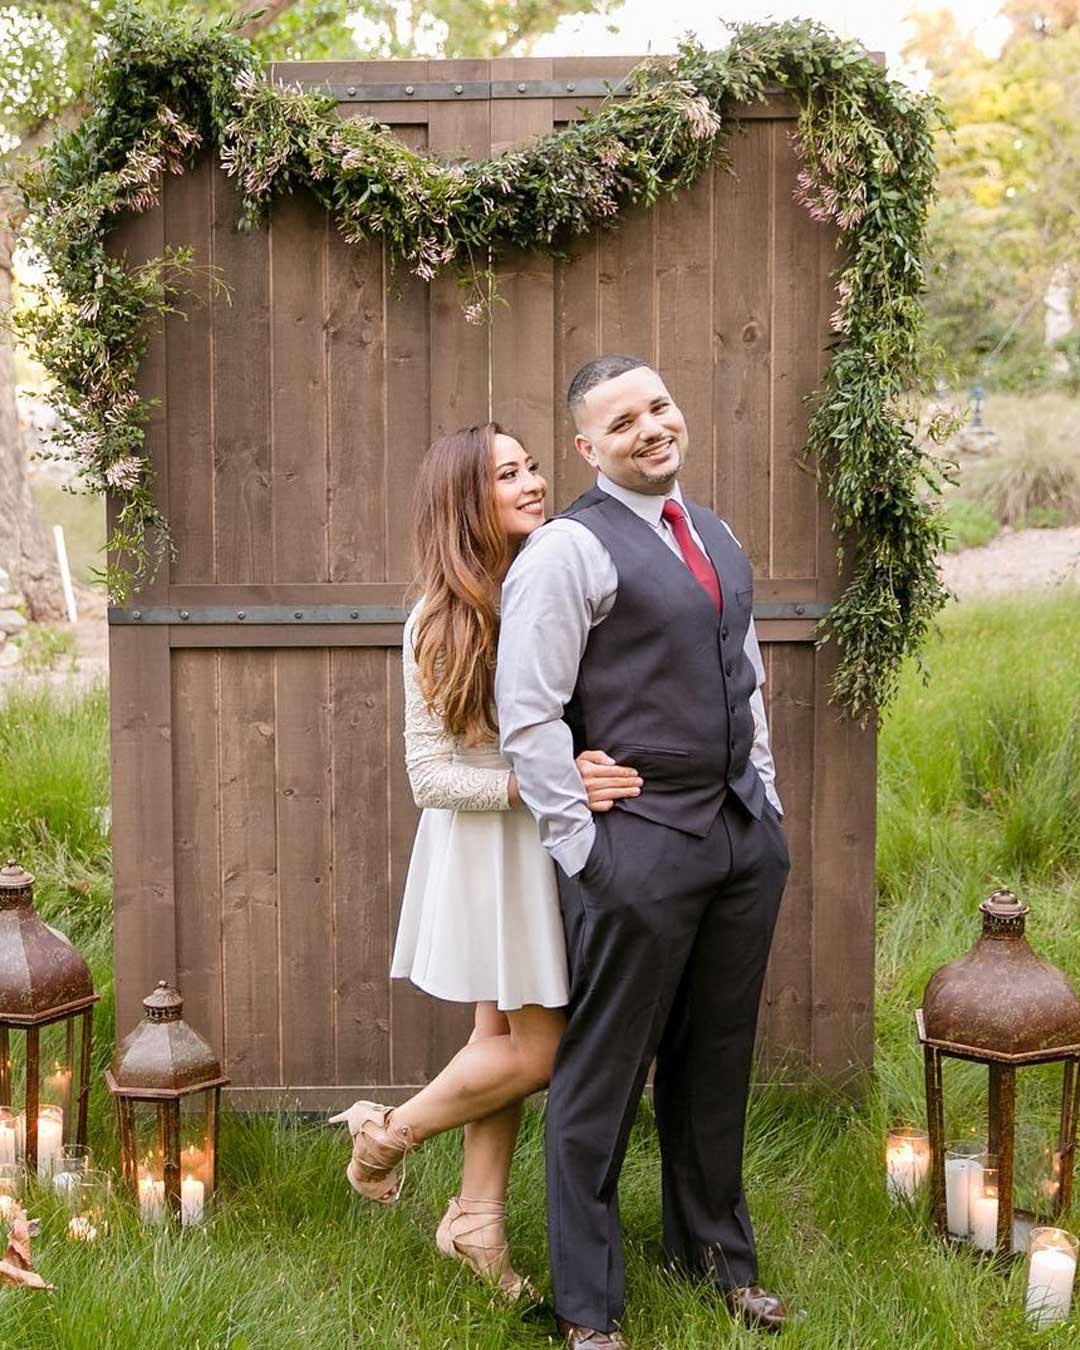 rustic-wedding ideas guests attire backdrop greenery candles